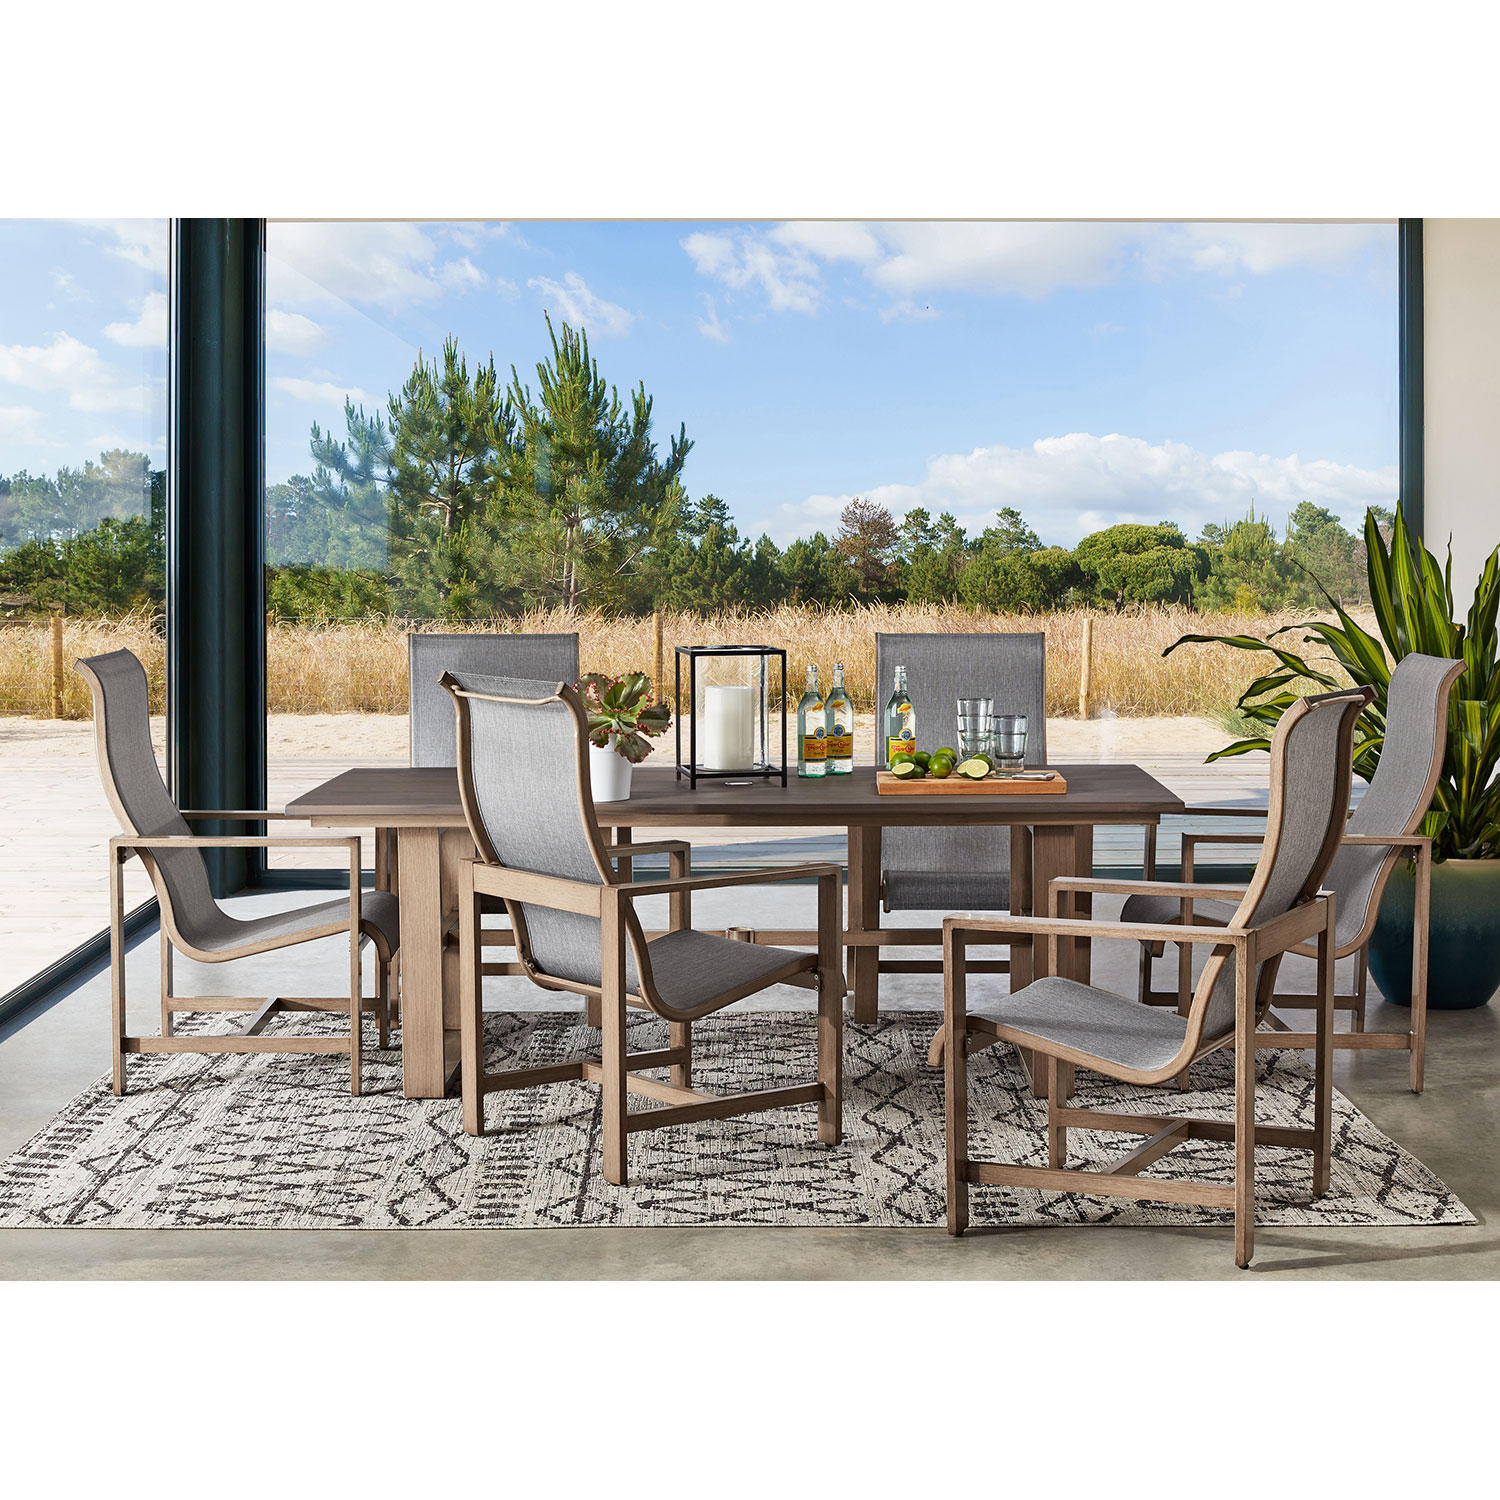 Member's Mark Agio Avondale 7-Piece Sling Patio Dining Set